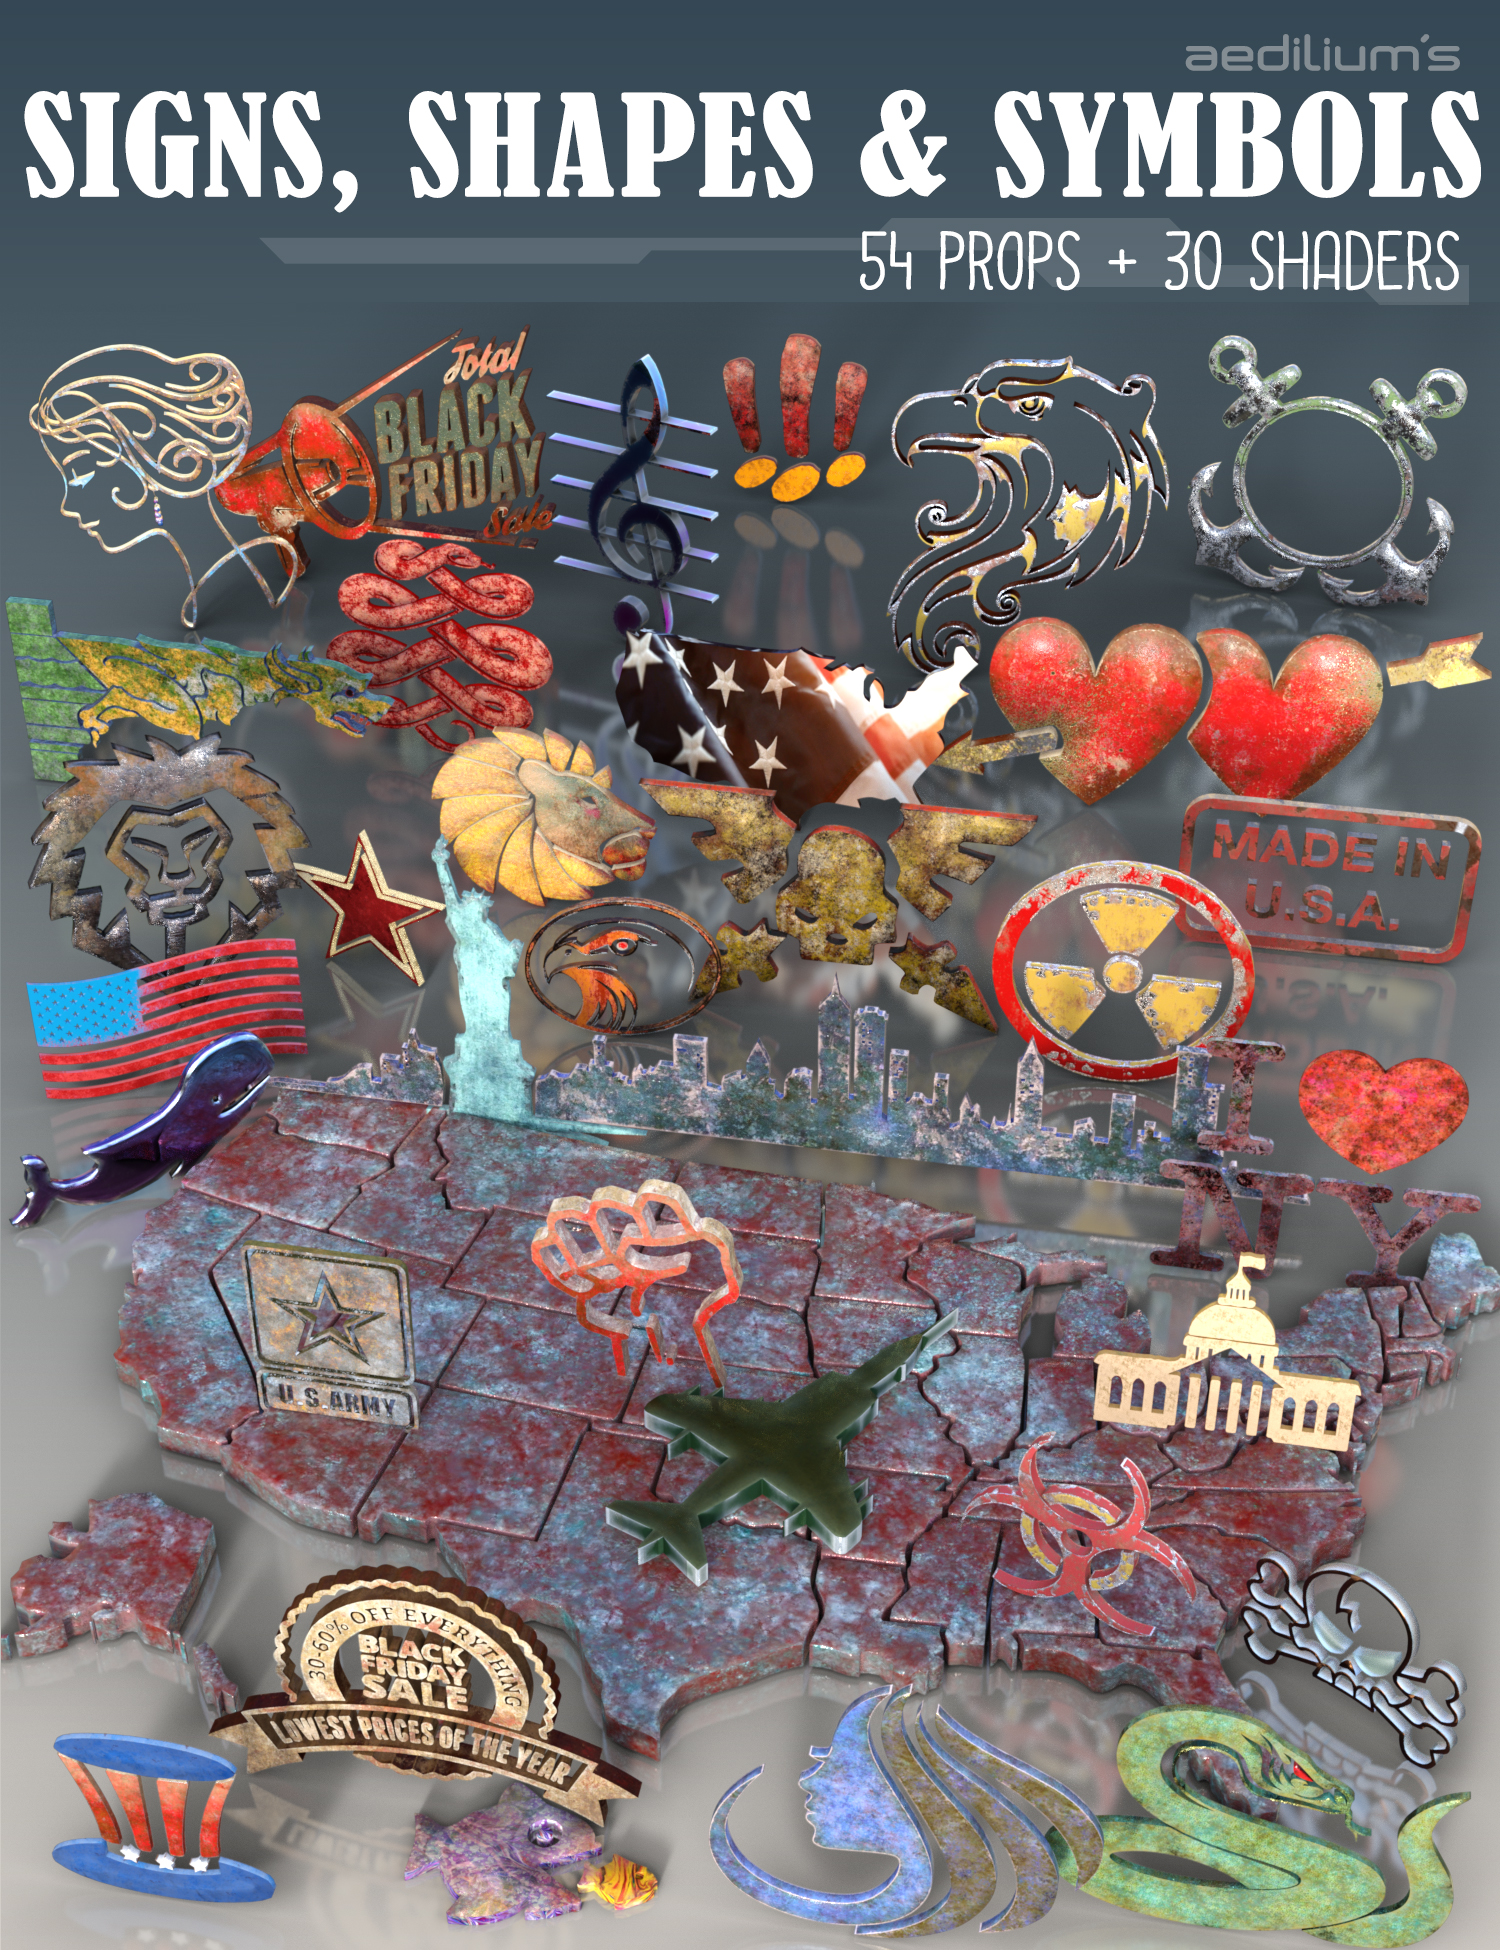 Signs, Shapes and Symbols for DAZ Studio by: Aedilium, 3D Models by Daz 3D